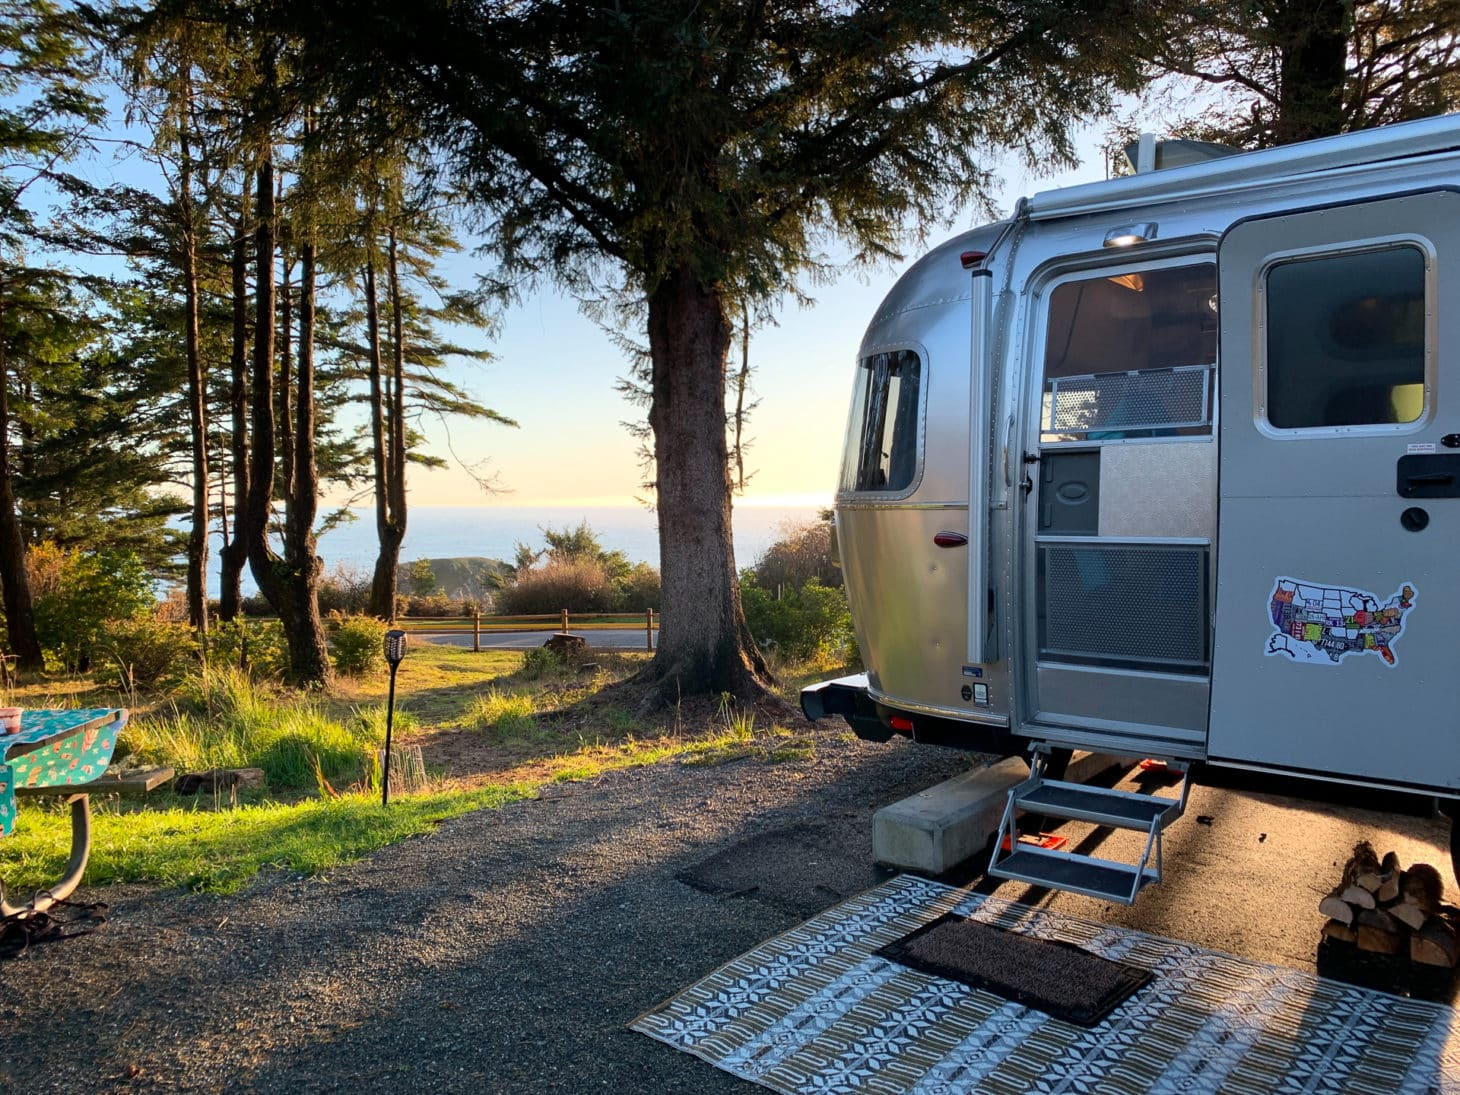 Airstream parked at campsite overlooking Pacific Ocean